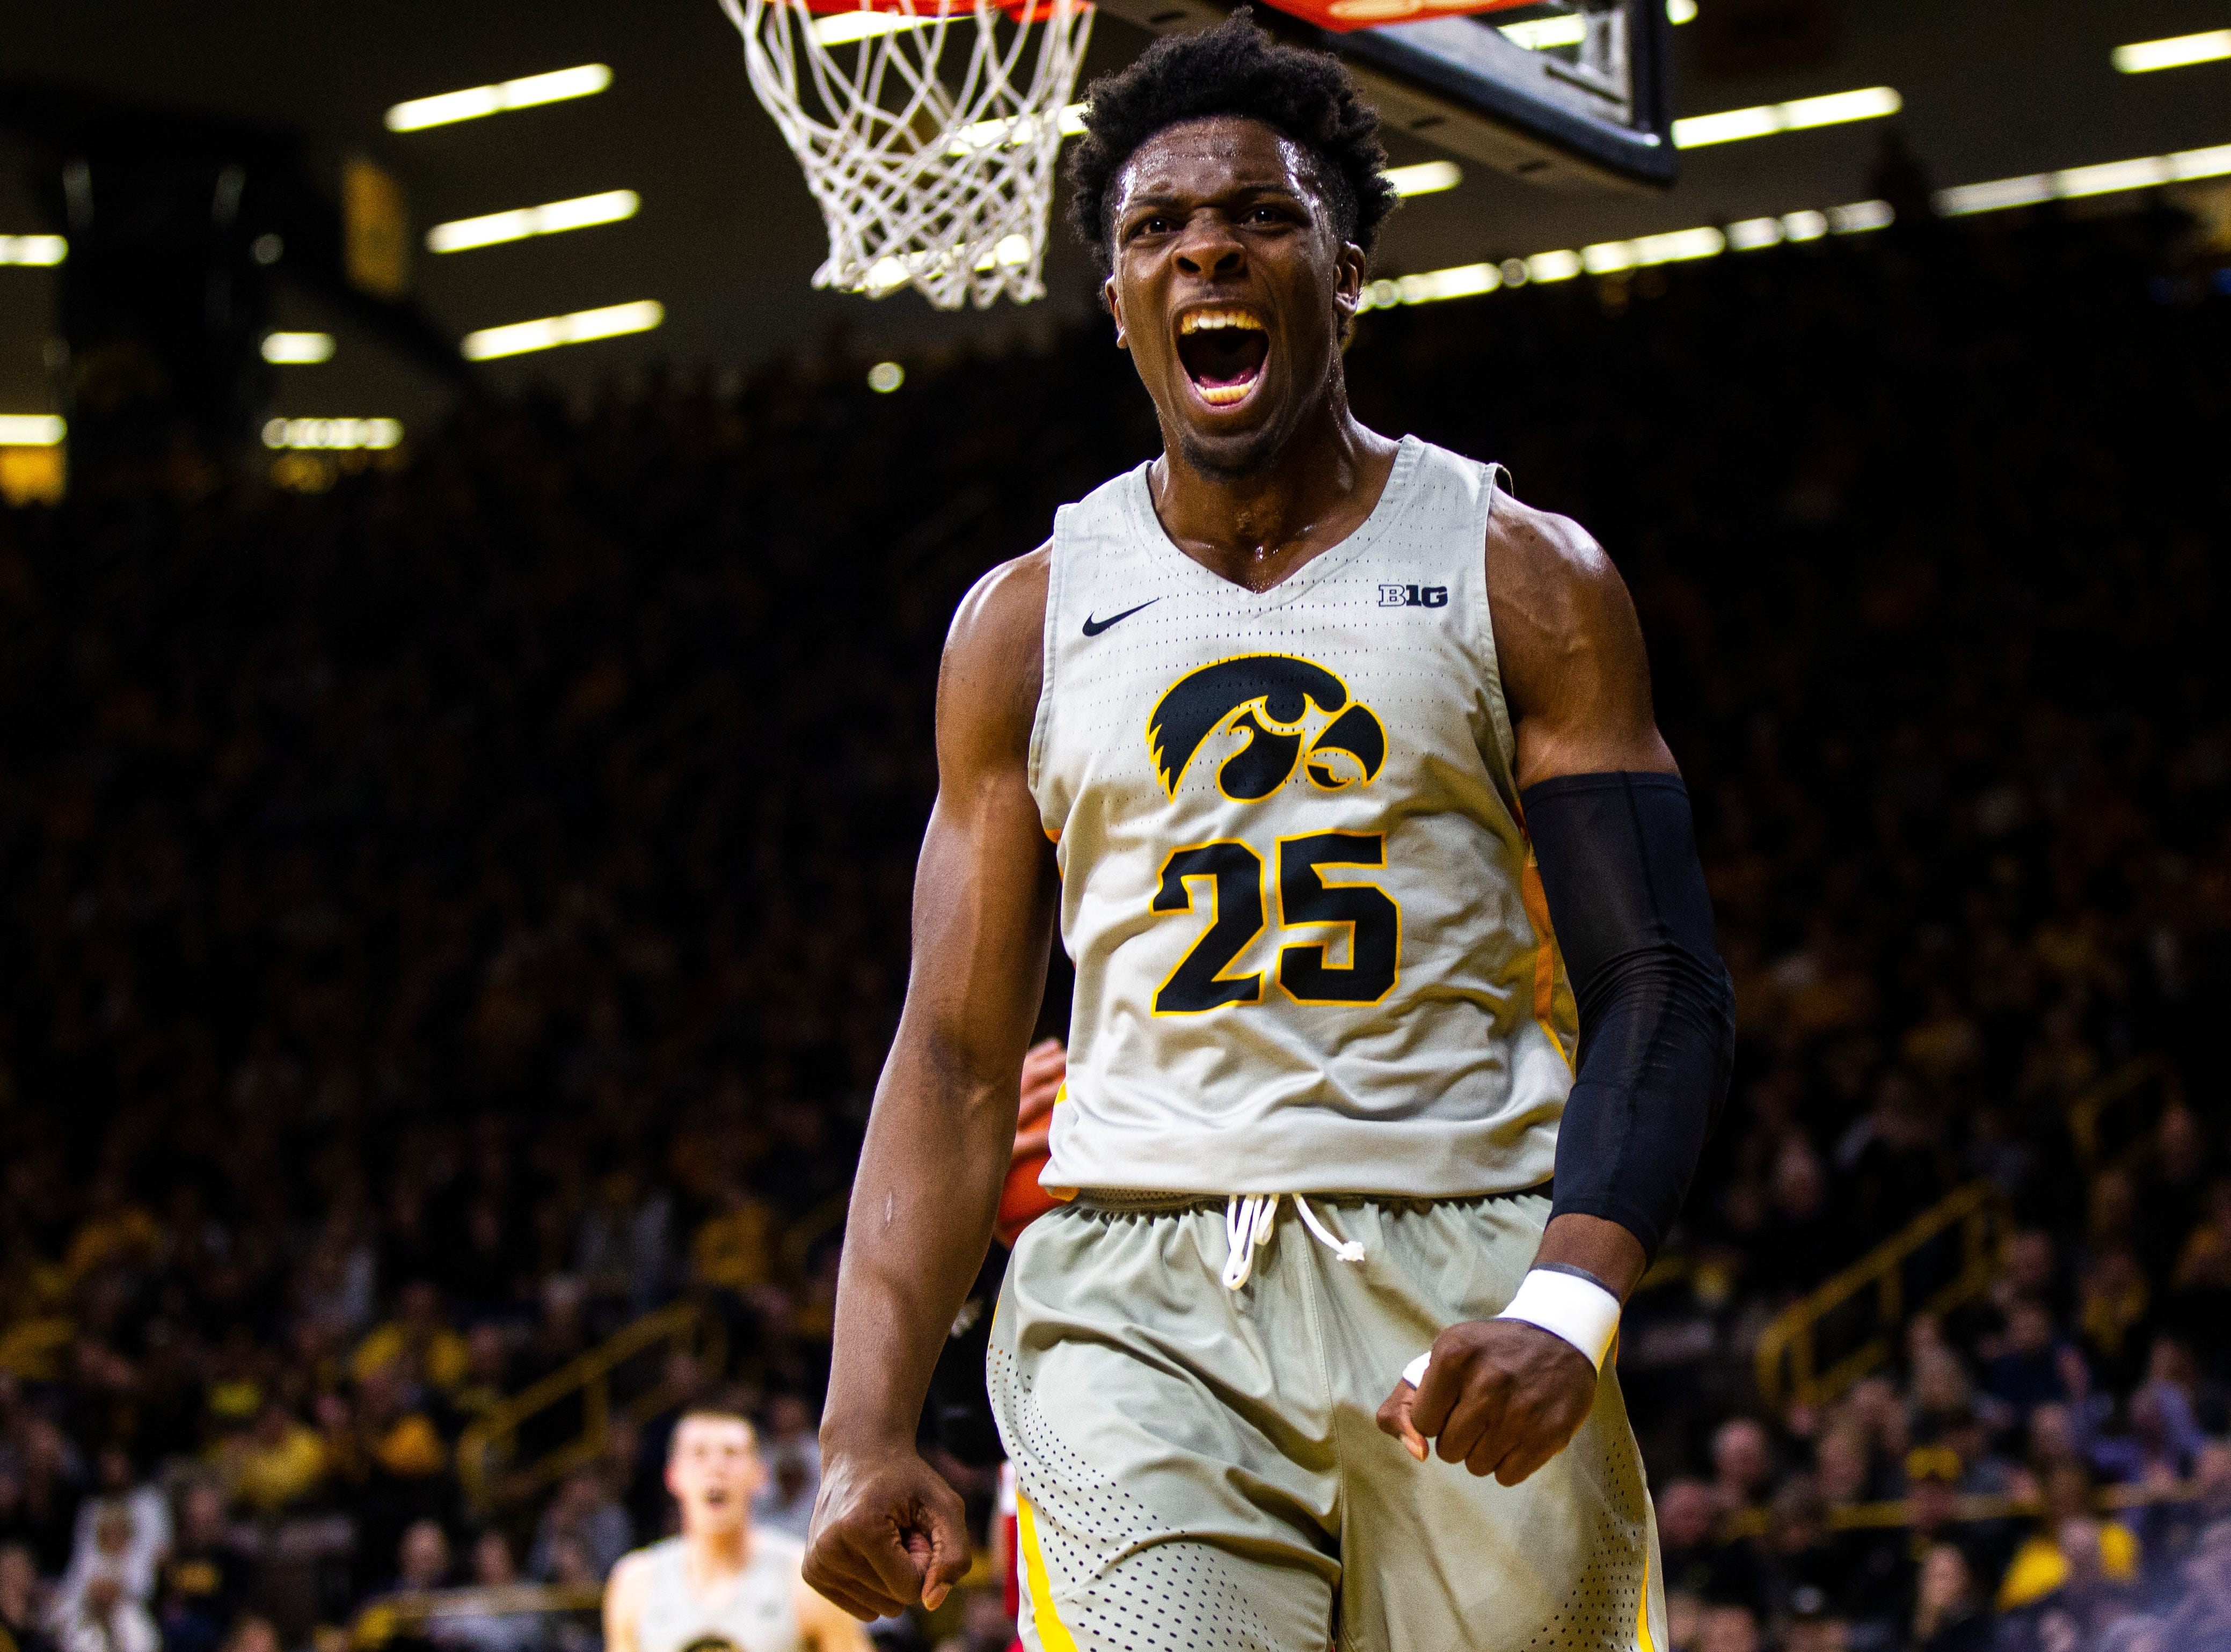 Iowa forward Tyler Cook (25) celebrates after drawing a foul during a NCAA Big Ten Conference men's basketball game on Sunday, Jan. 6, 2019, at the Carver-Hawkeye Arena in Iowa City, Iowa.